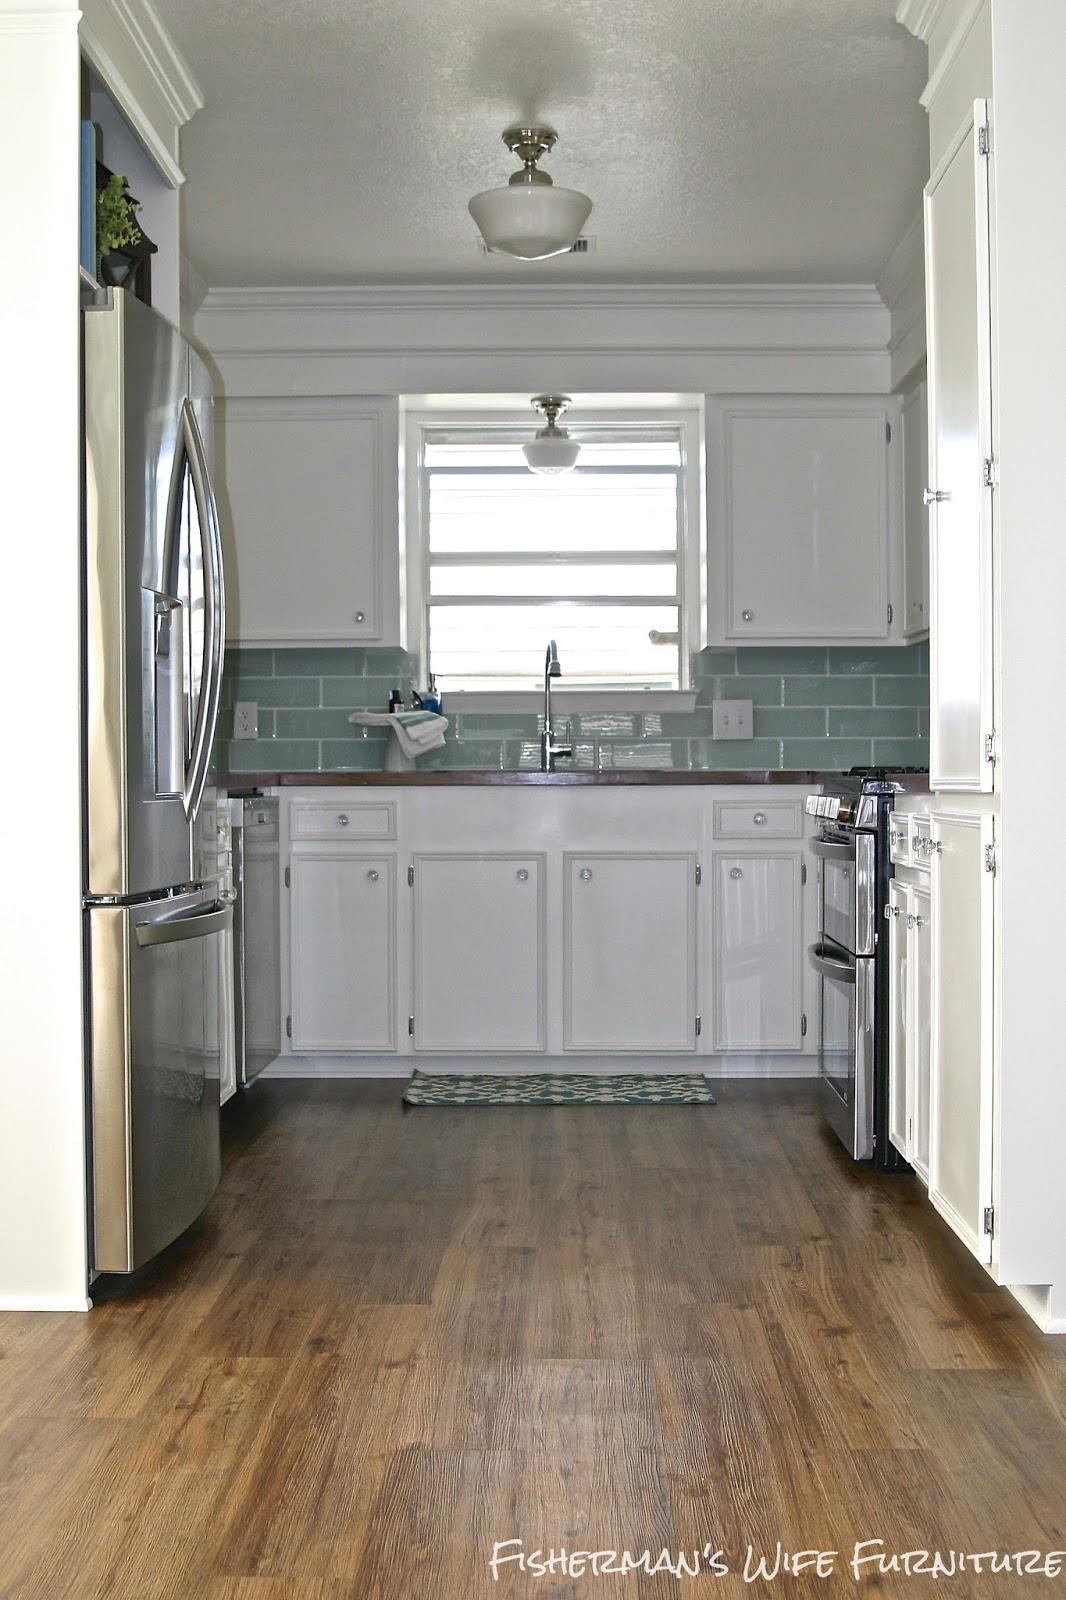 Remodelaholic | Small White Kitchen Makeover with Built-In ... on Small Kitchen Renovation  id=50657